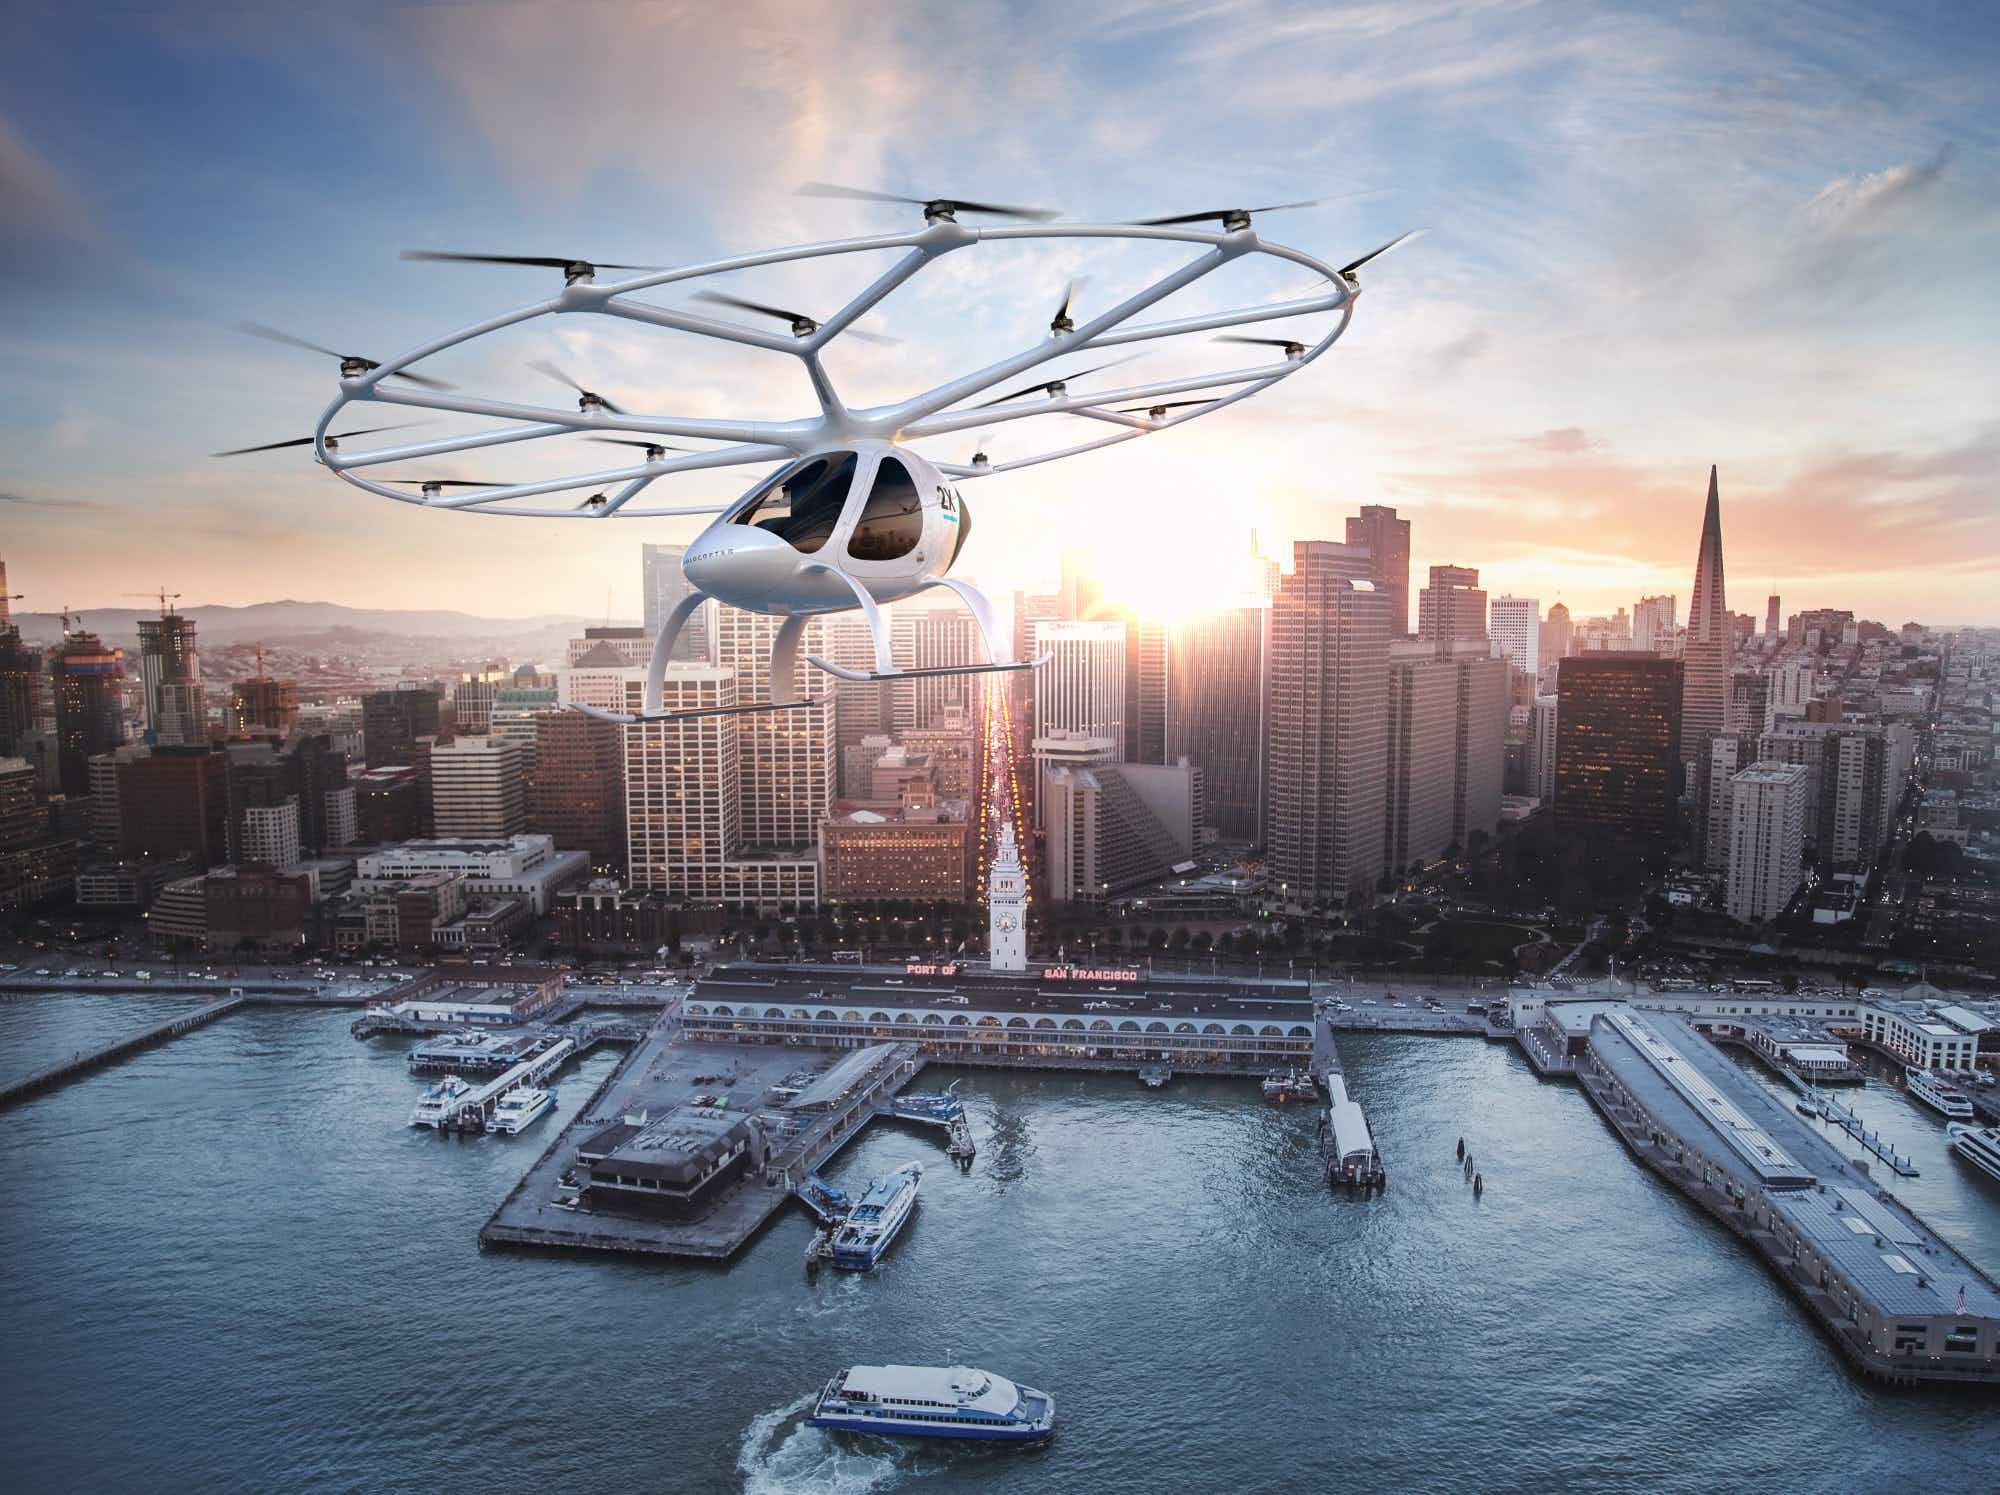 Introducing the Volocopter – the world's first flying passenger drone